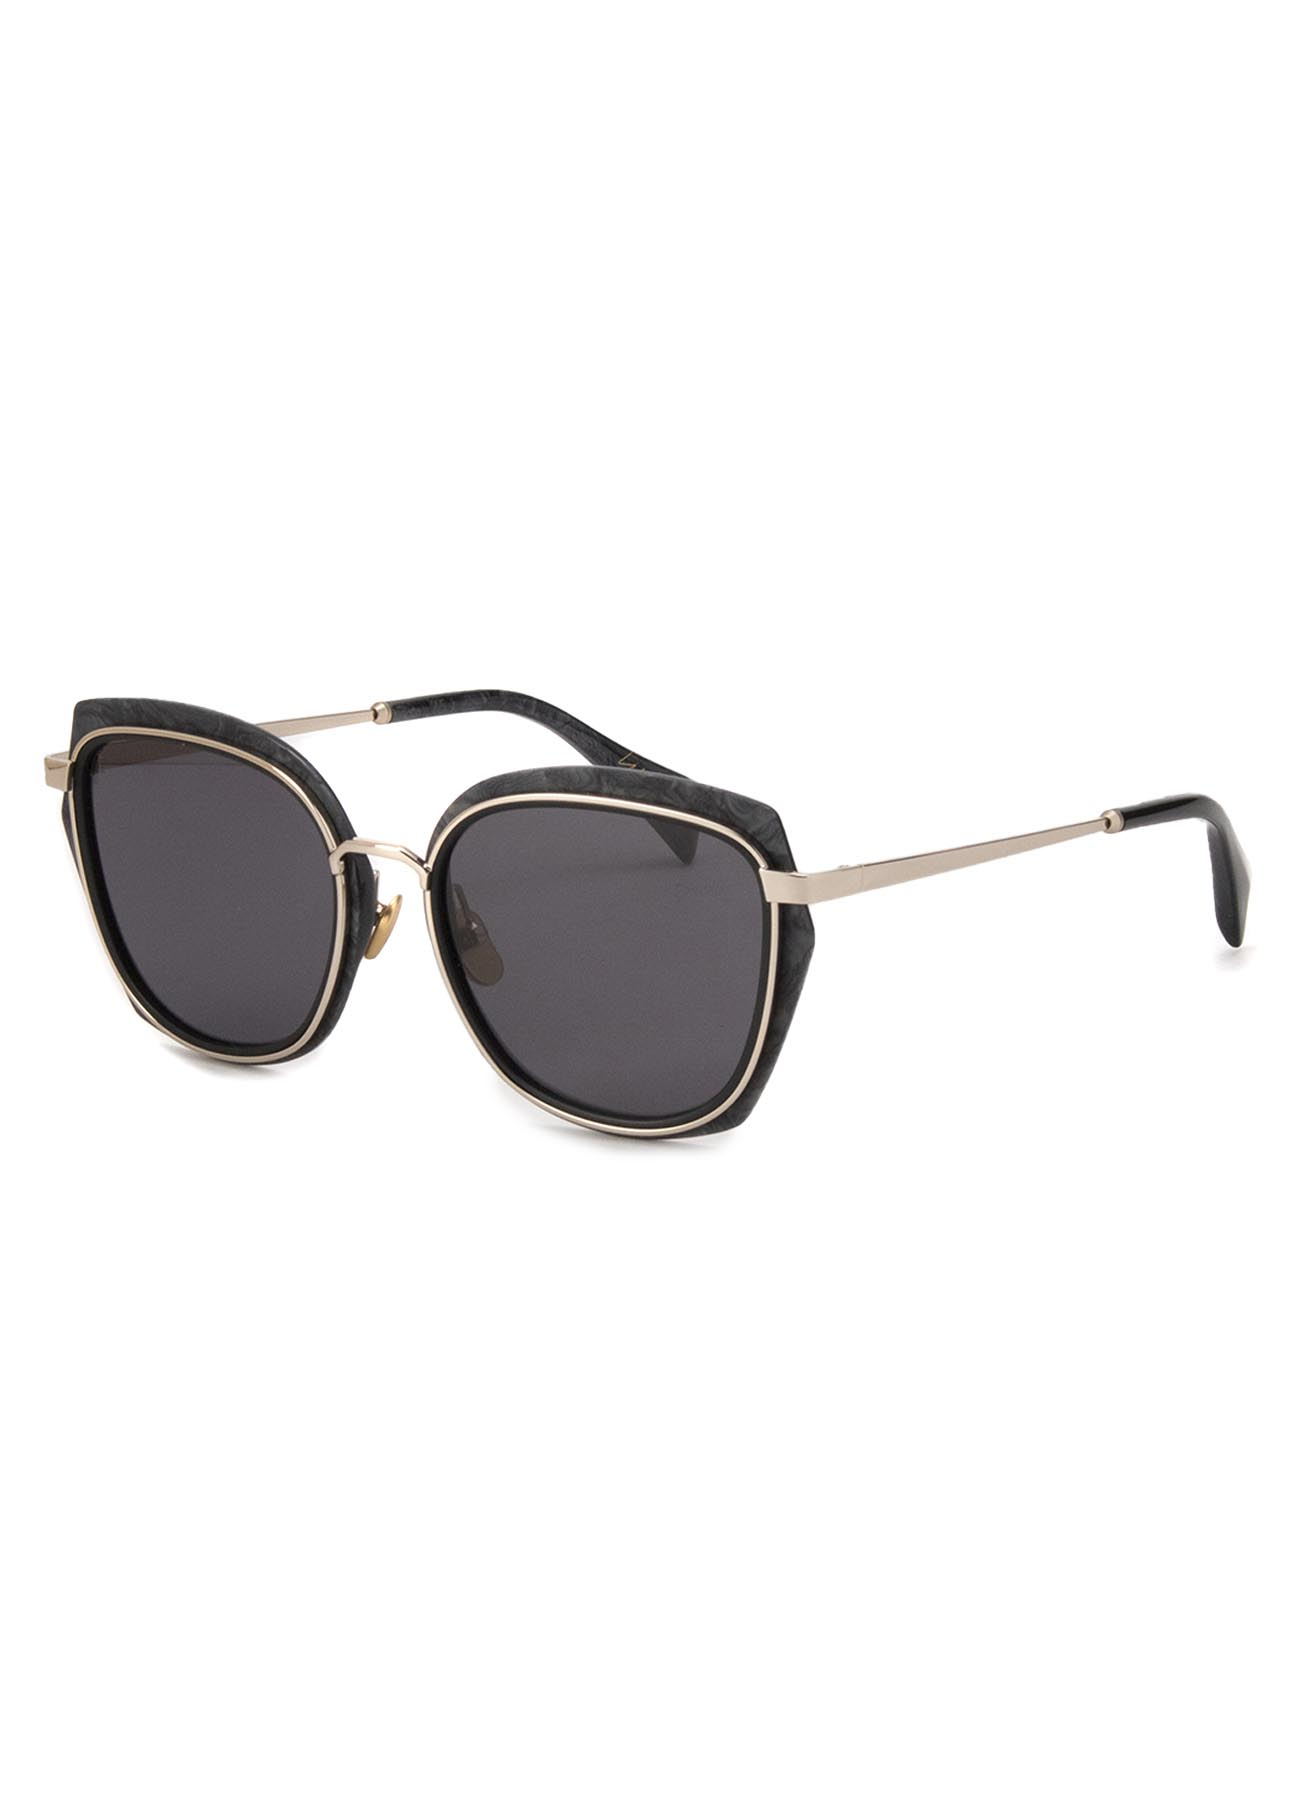 Stainless Steel Acetate YY5023 SUNGLASS